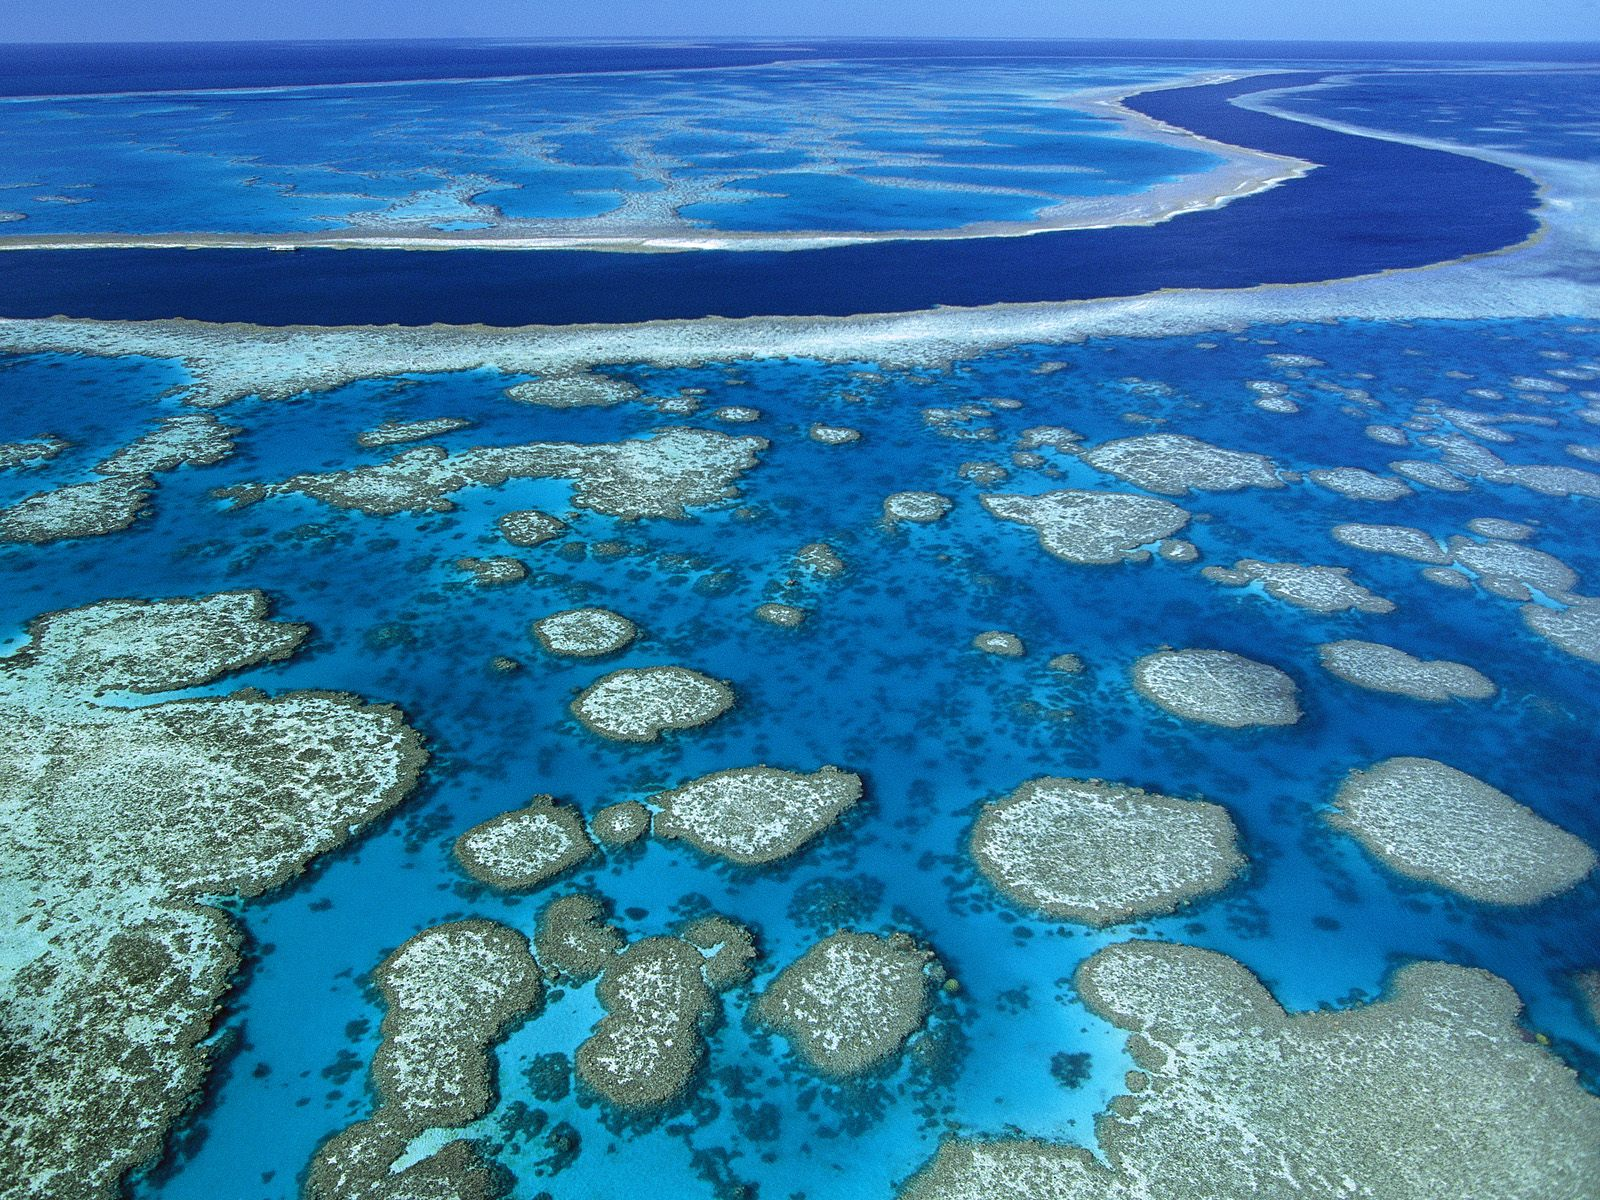 Australia great barrier reef marine park queensland